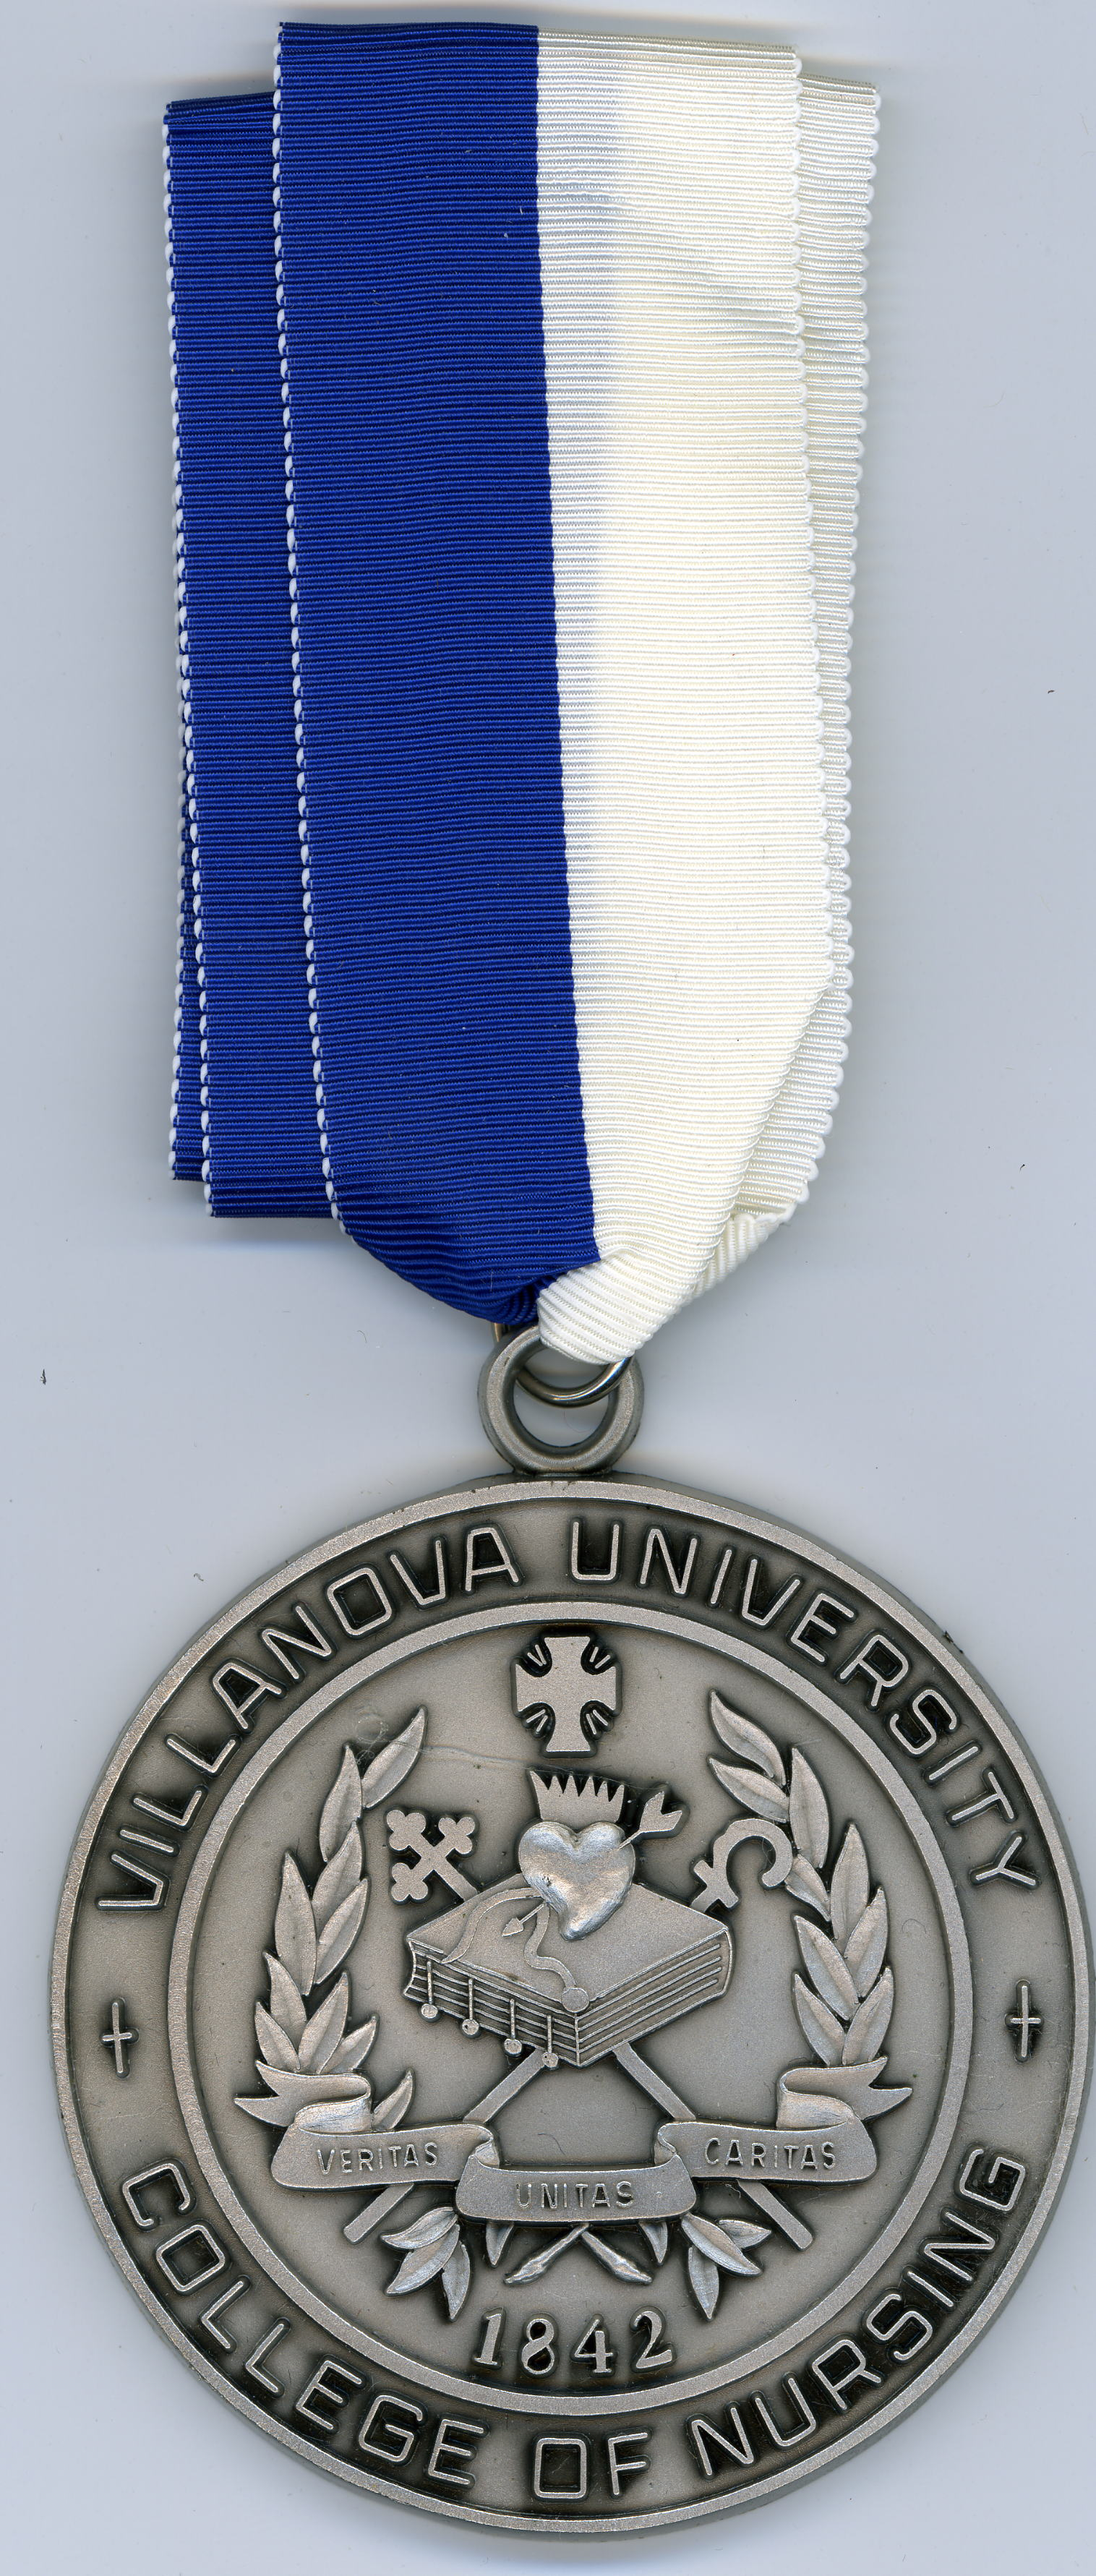 Medallion of the College of Nursing